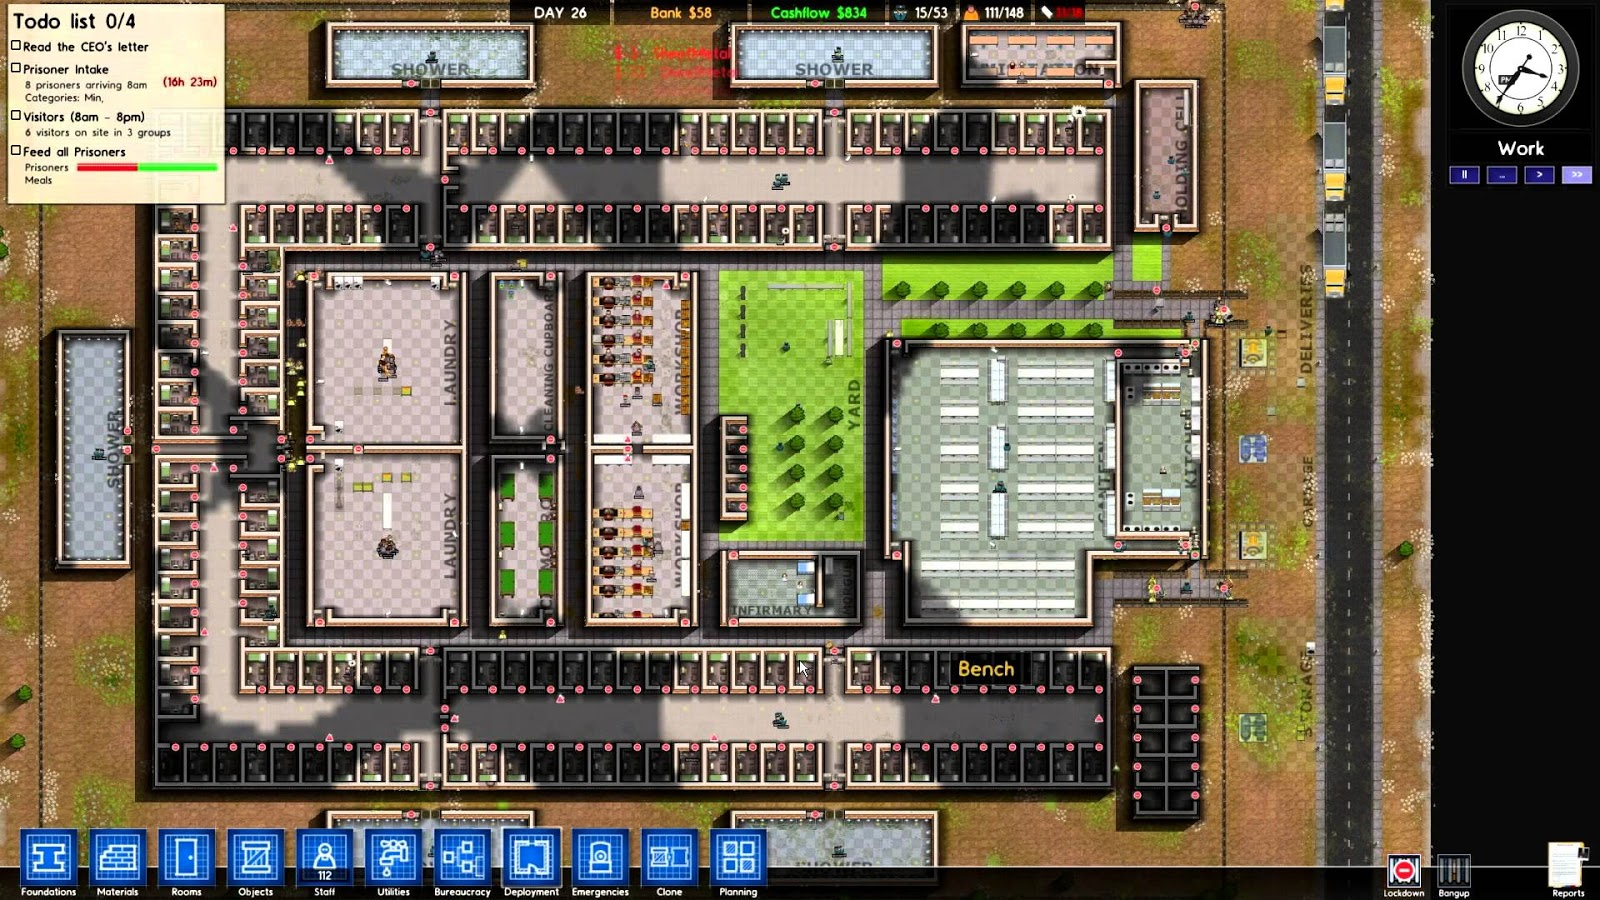 Download prison architect v1 0 final edition anime pc for Architecture games online free